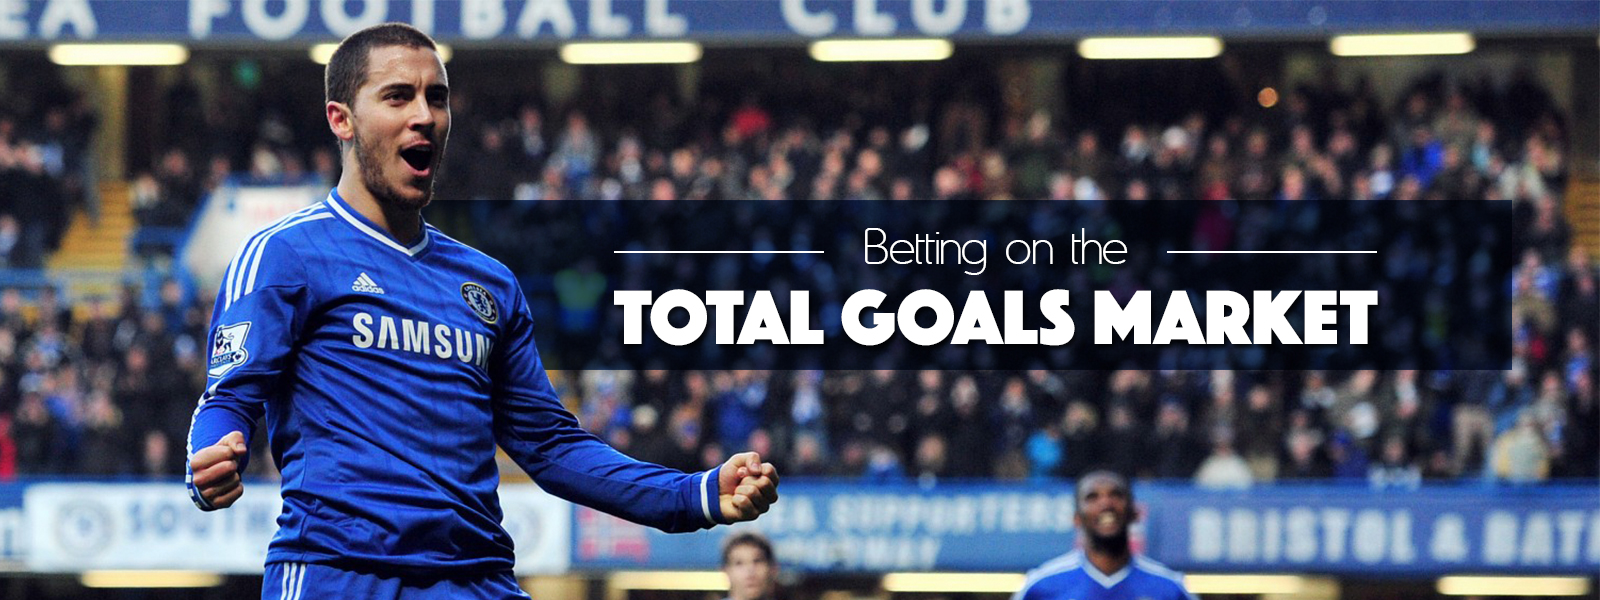 Betting on the total goals market